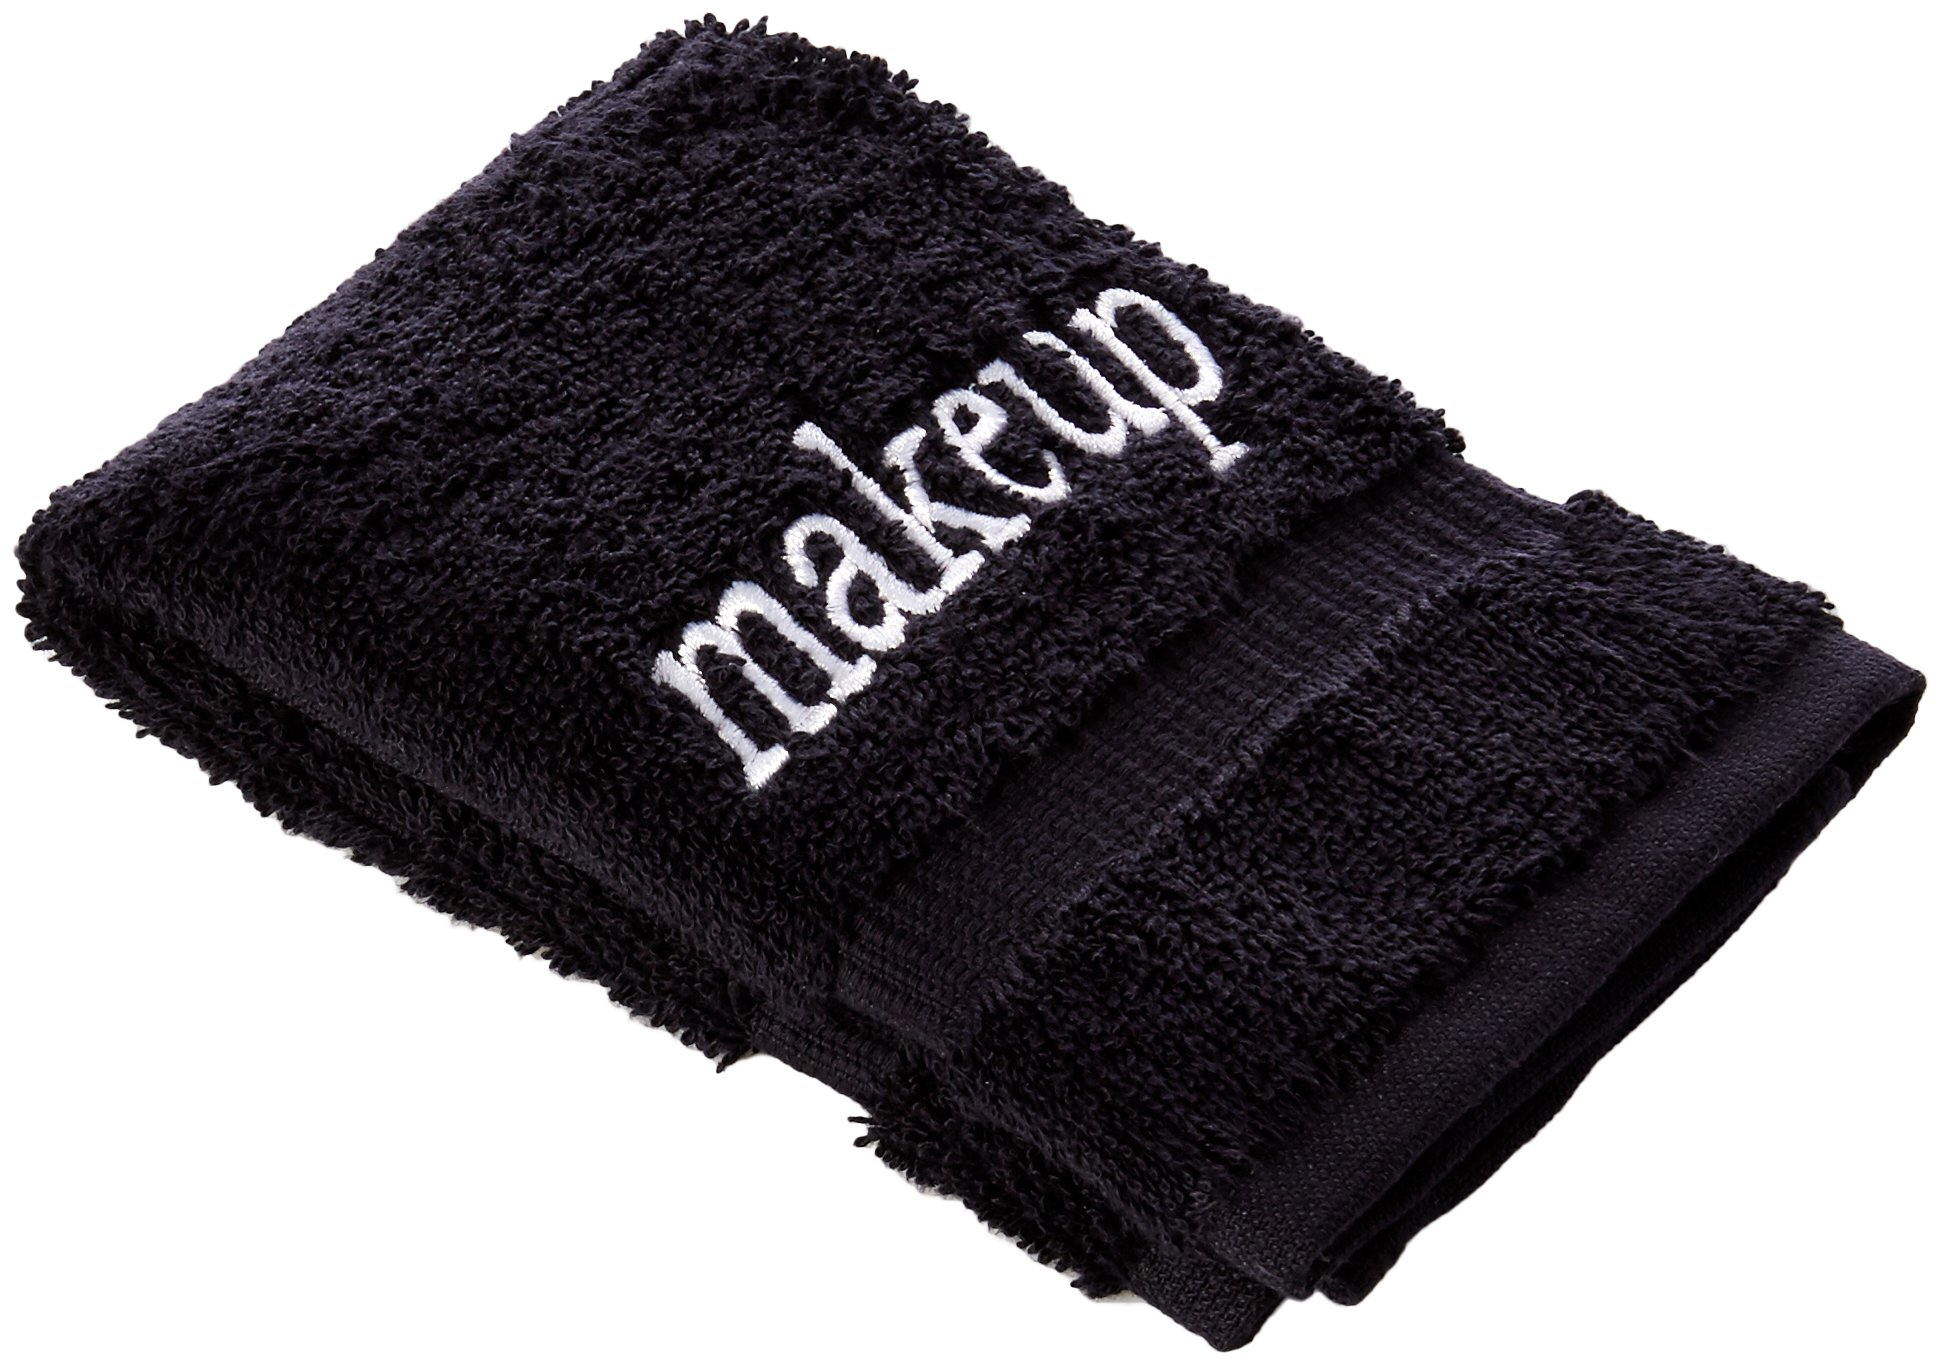 Luxury Black Cloth Turkish Cotton Make up Cleansing (Set of 6) product image